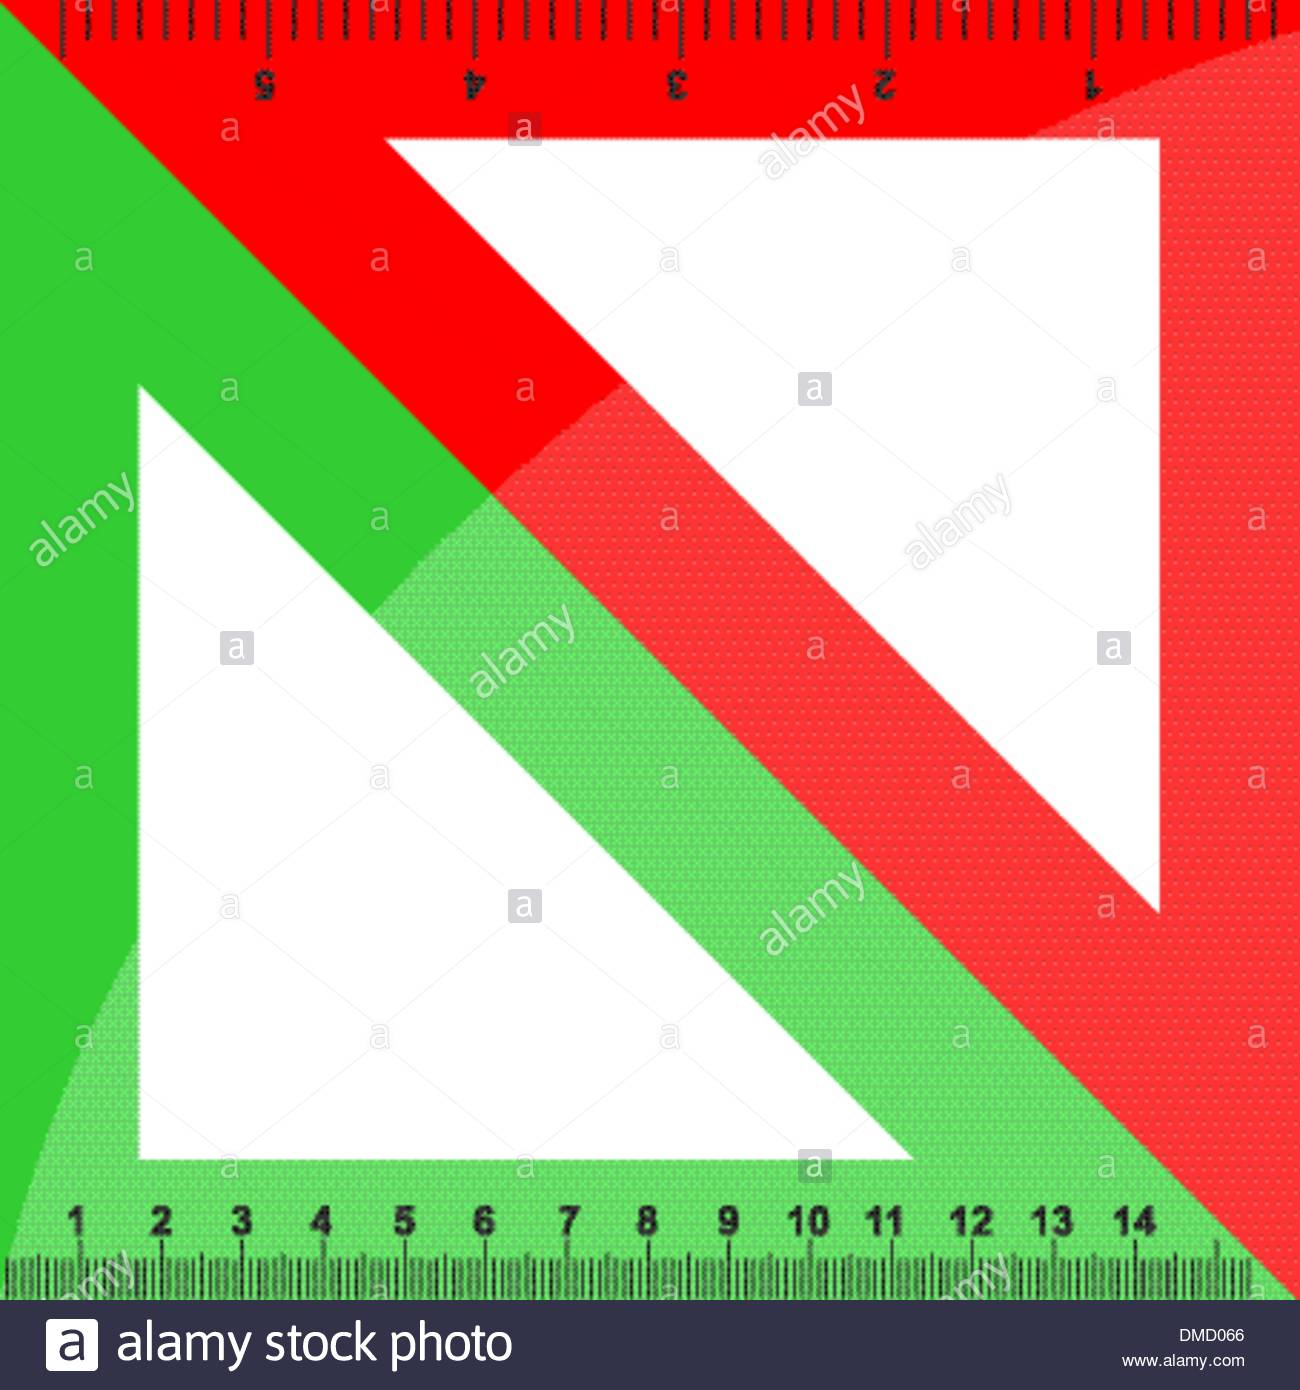 Green and red triangles - Stock Vector